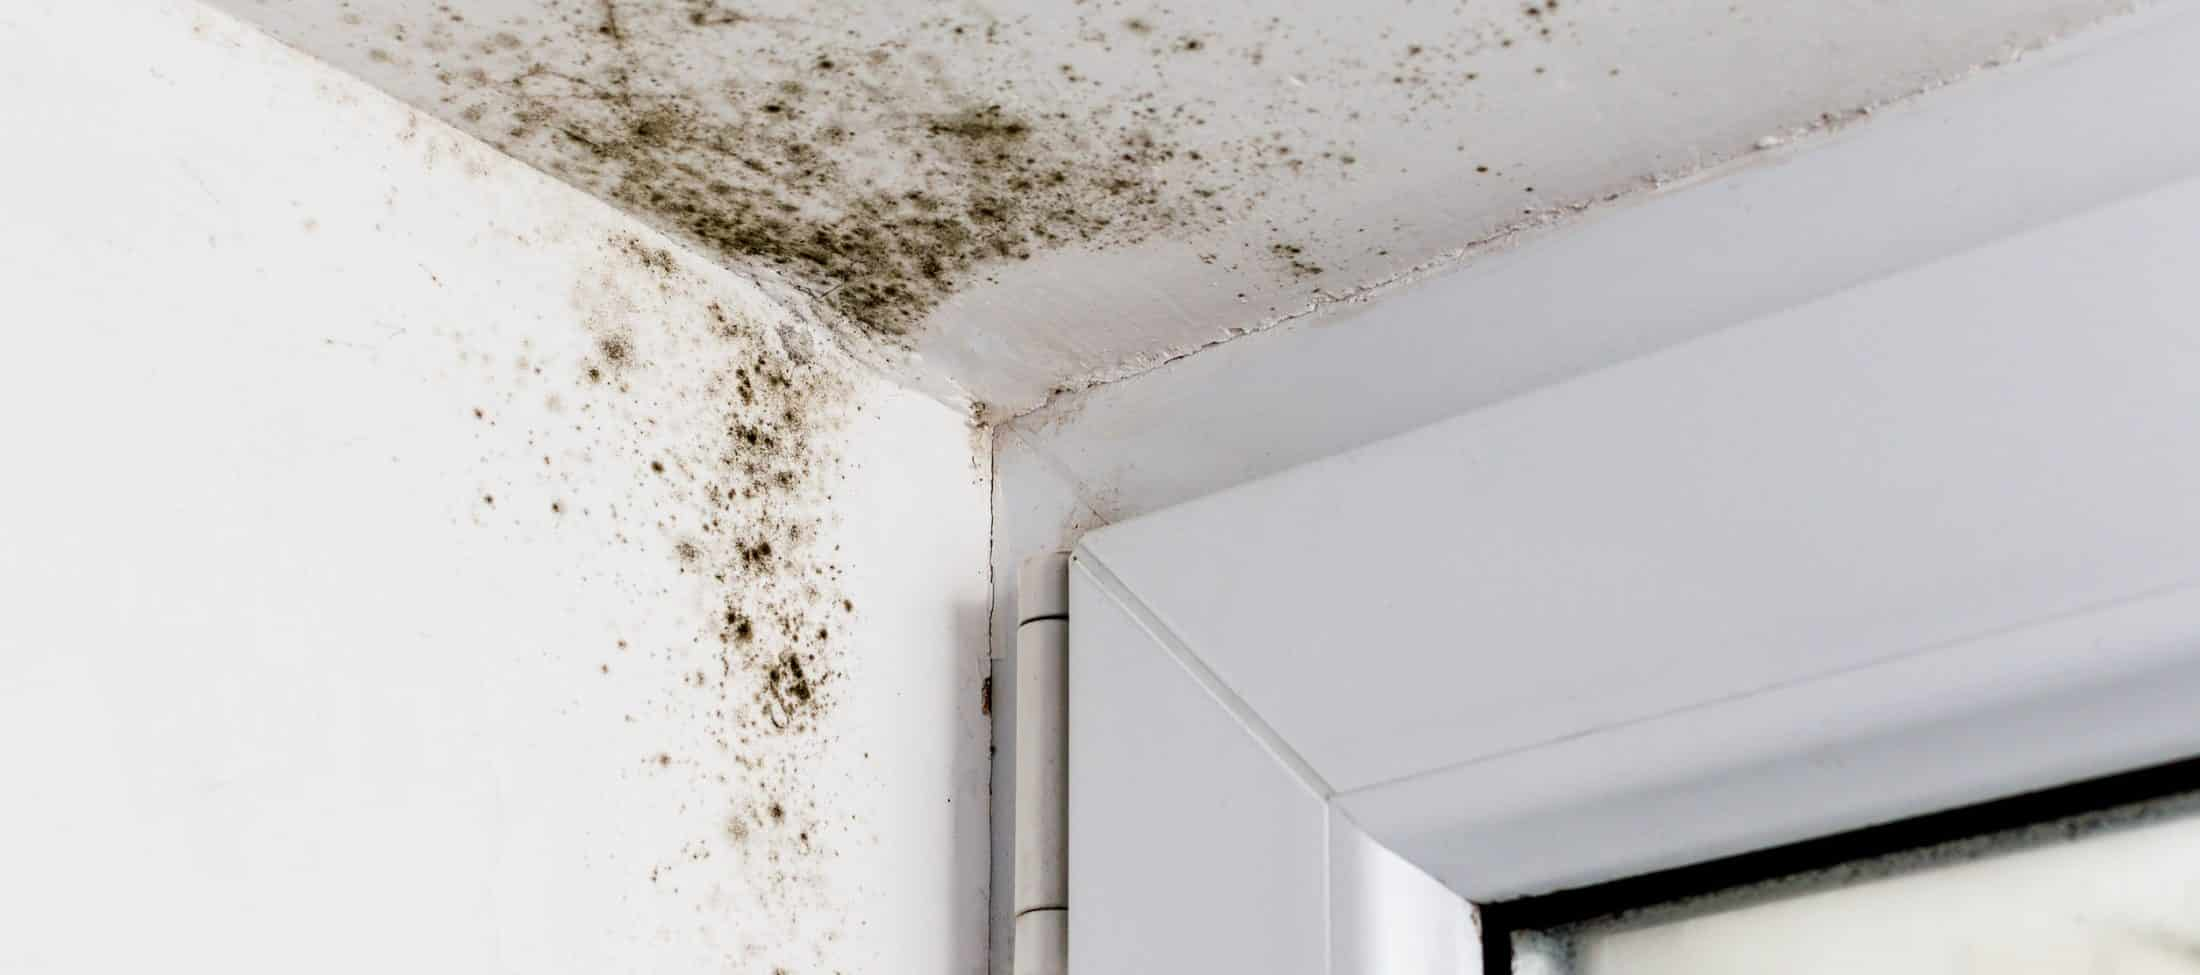 Mold Removal Rockville